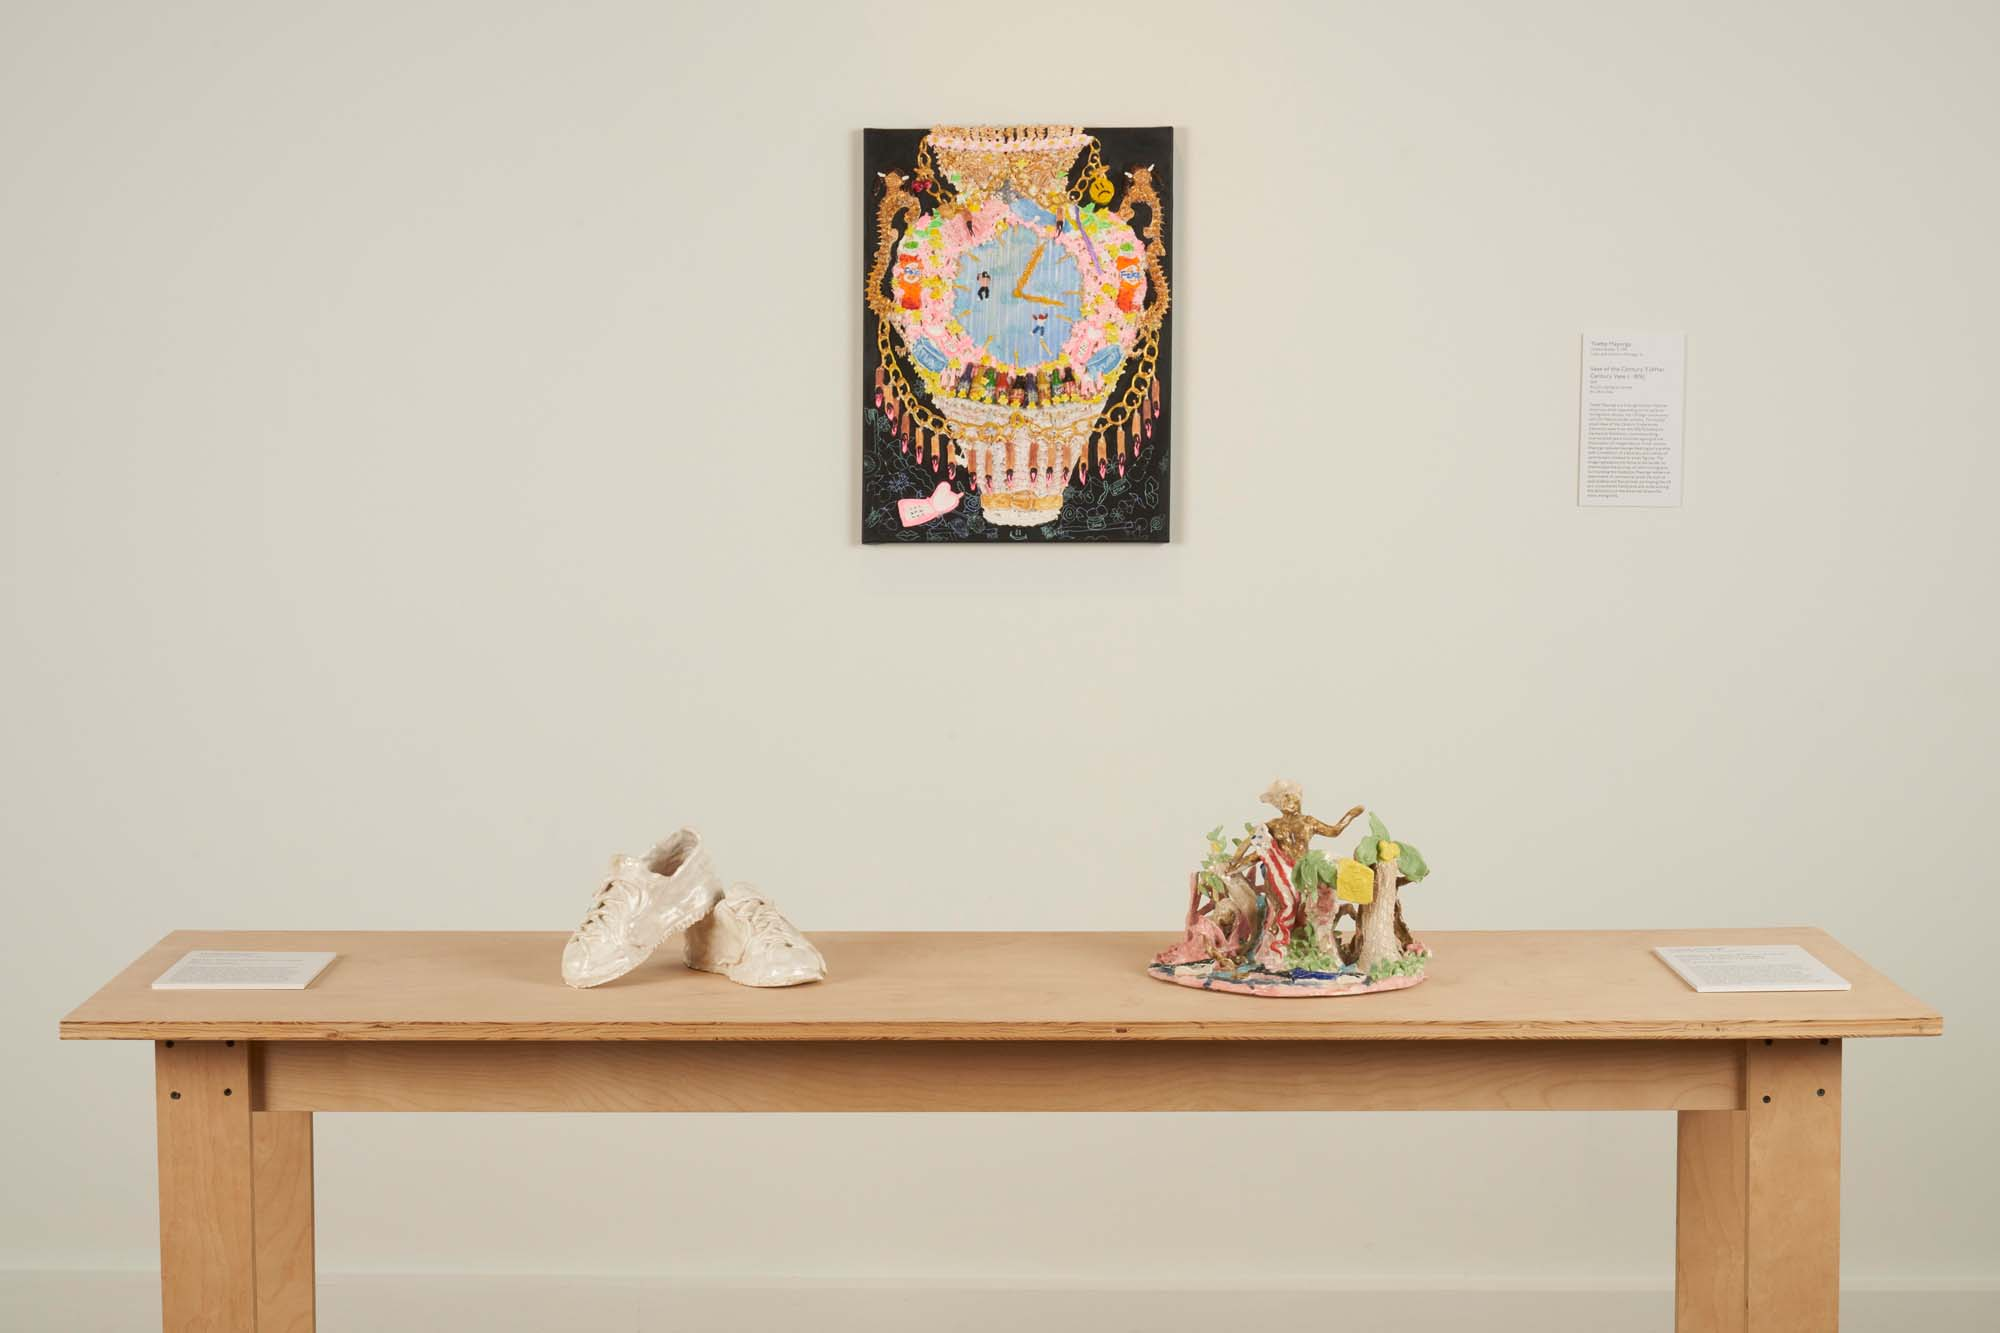 """Image of two ceramic sculptures, """"Killer Shoes"""" (left) and """"Alligator Boots"""" (right) and one acrylic painting, """"Vase of the Century 3"""", by Yvette Mayorga."""